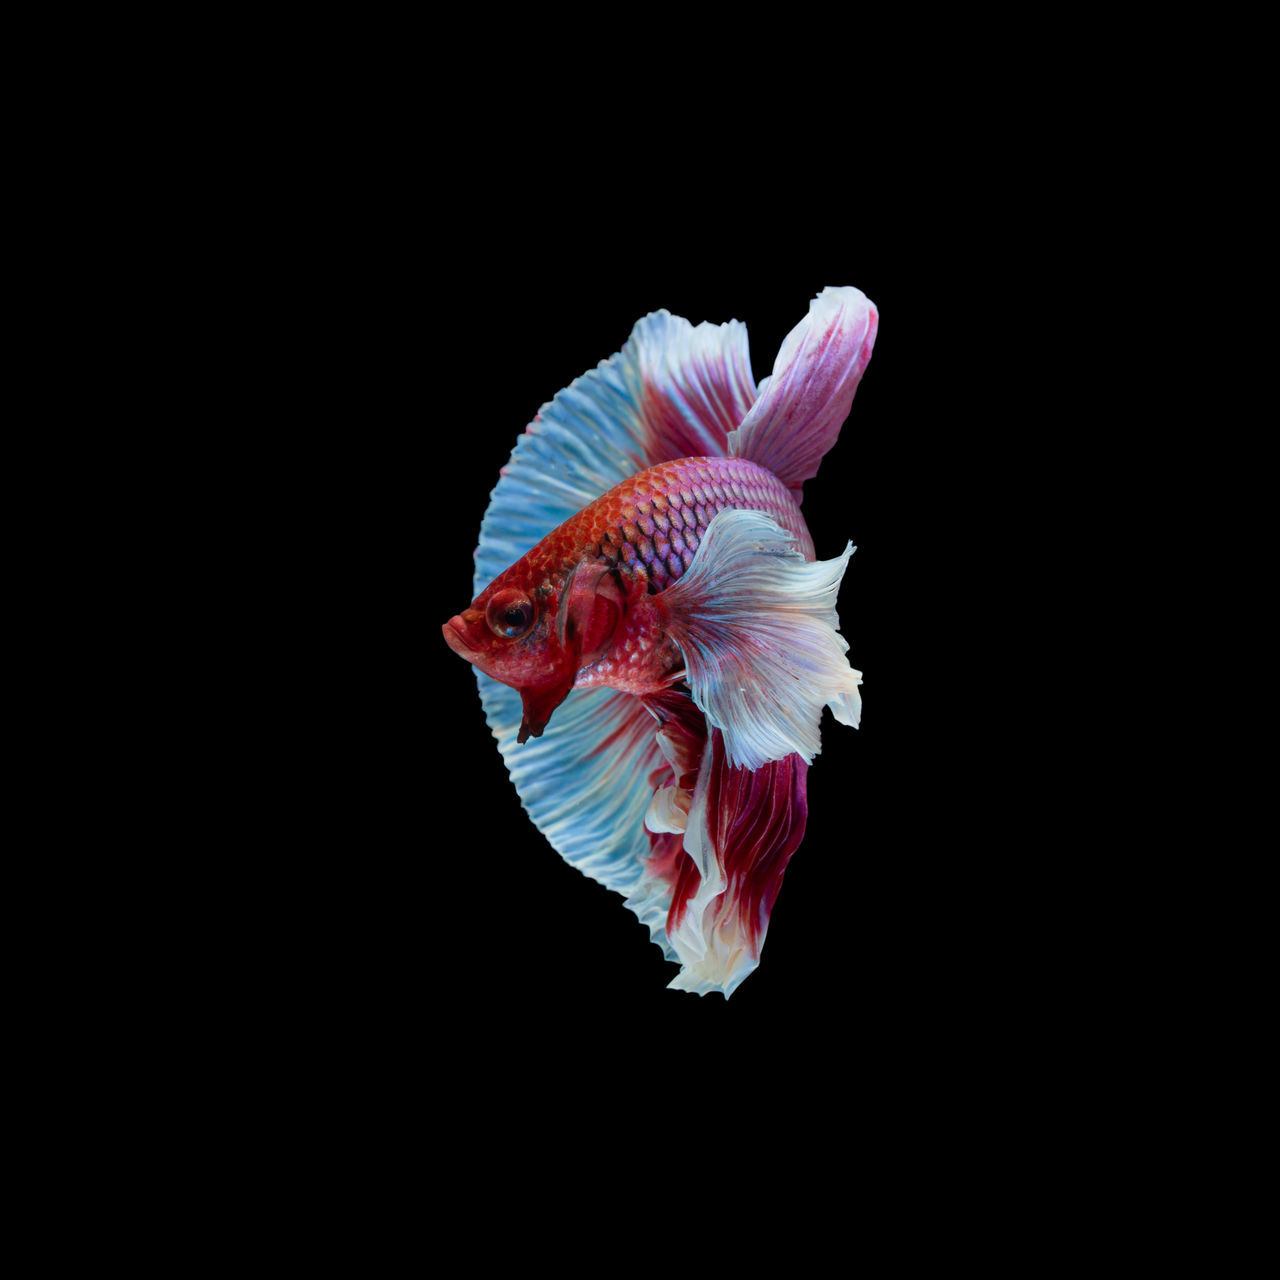 animal, animal themes, studio shot, animal wildlife, animals in the wild, vertebrate, fish, copy space, black background, indoors, beauty in nature, swimming, water, close-up, no people, sea, one animal, underwater, nature, cut out, marine